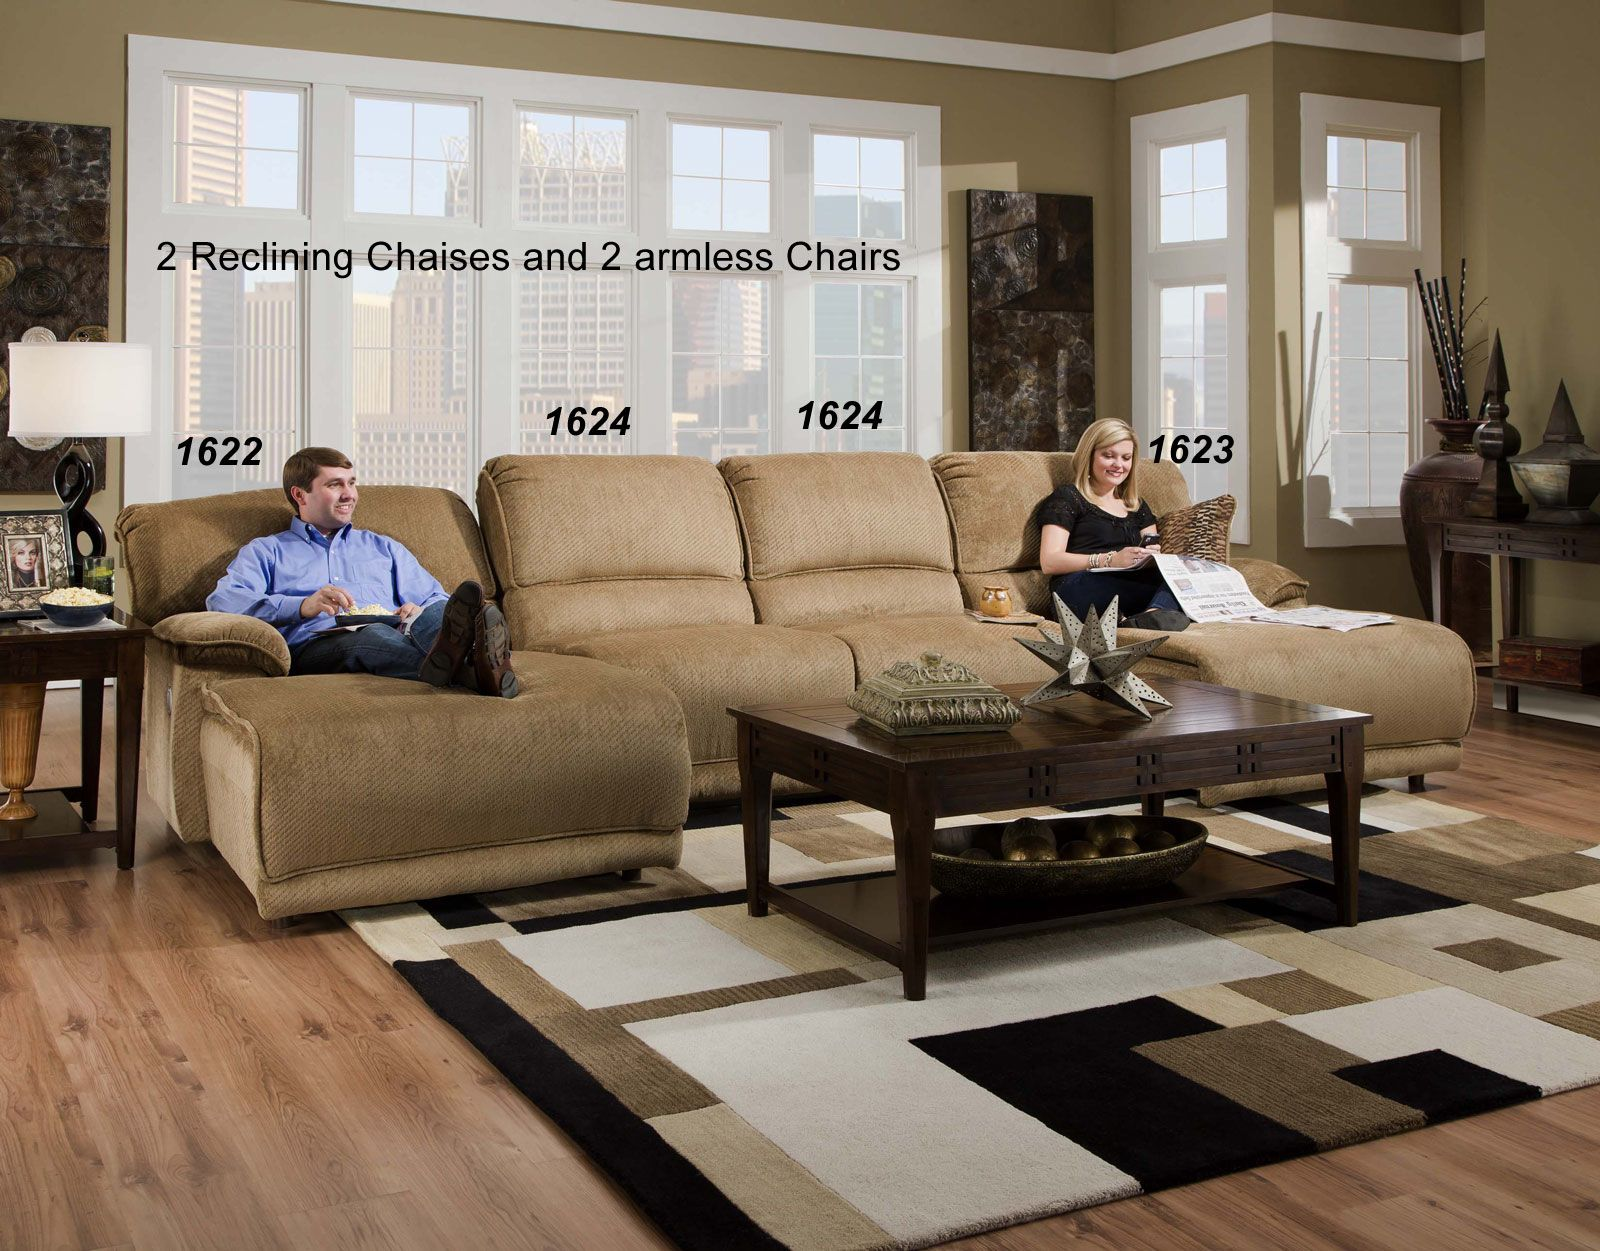 Catnapper grandover pc reclining chaise sectional sofa set